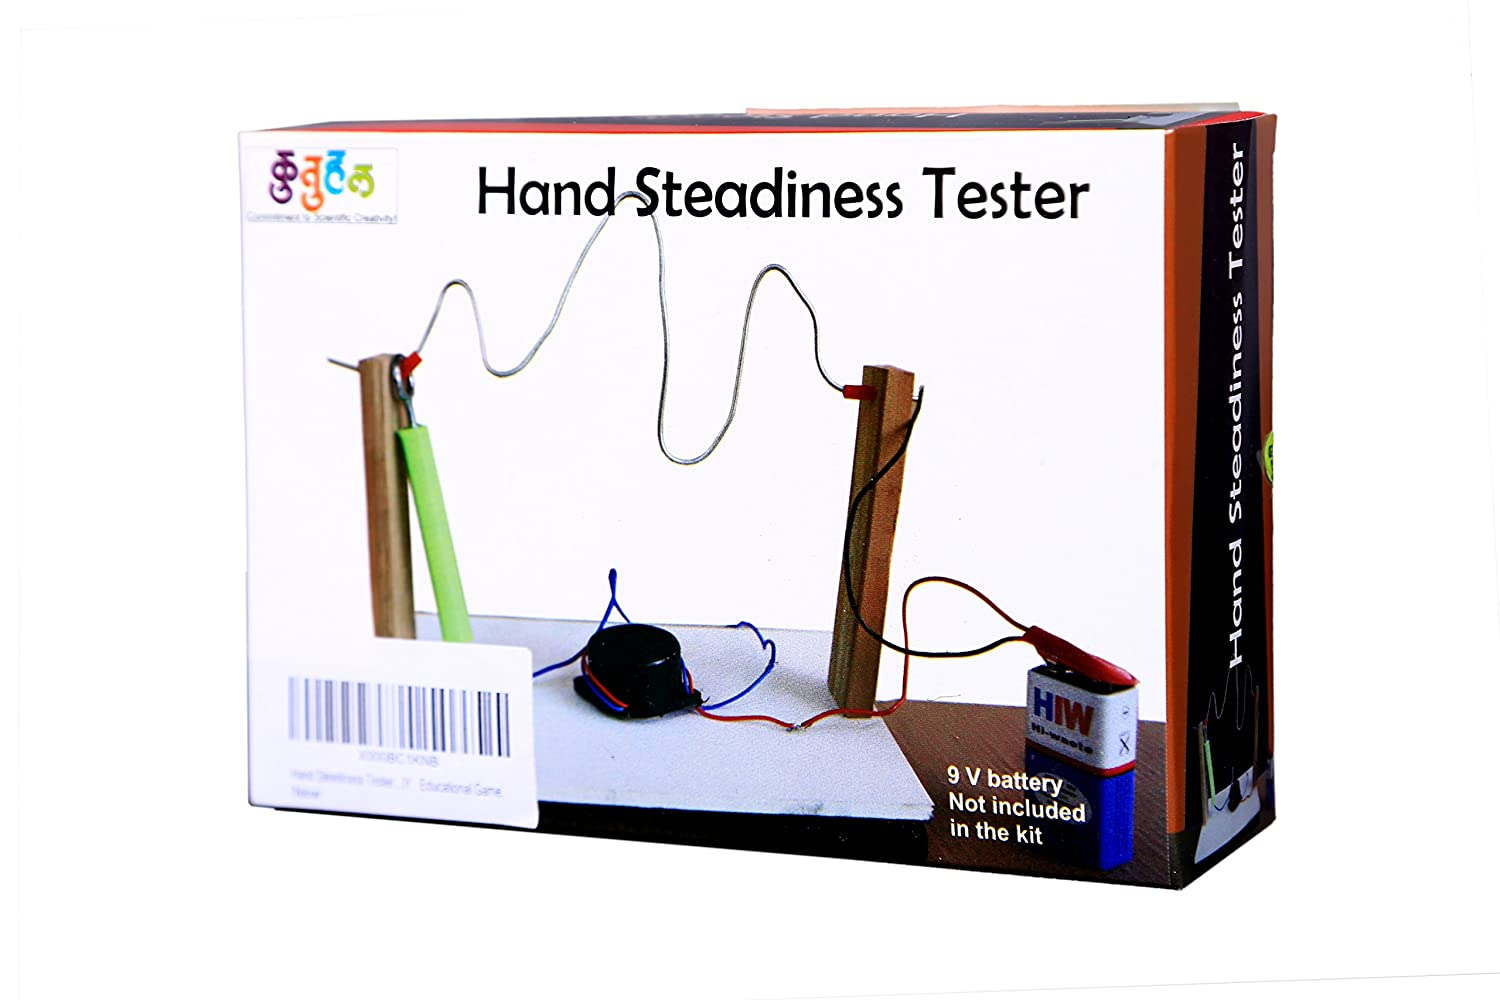 Buy hand steadiness tester making kit do it yourself diy buy hand steadiness tester making kit do it yourself diy working model educational learning toy school project physics science activity kit solutioingenieria Gallery